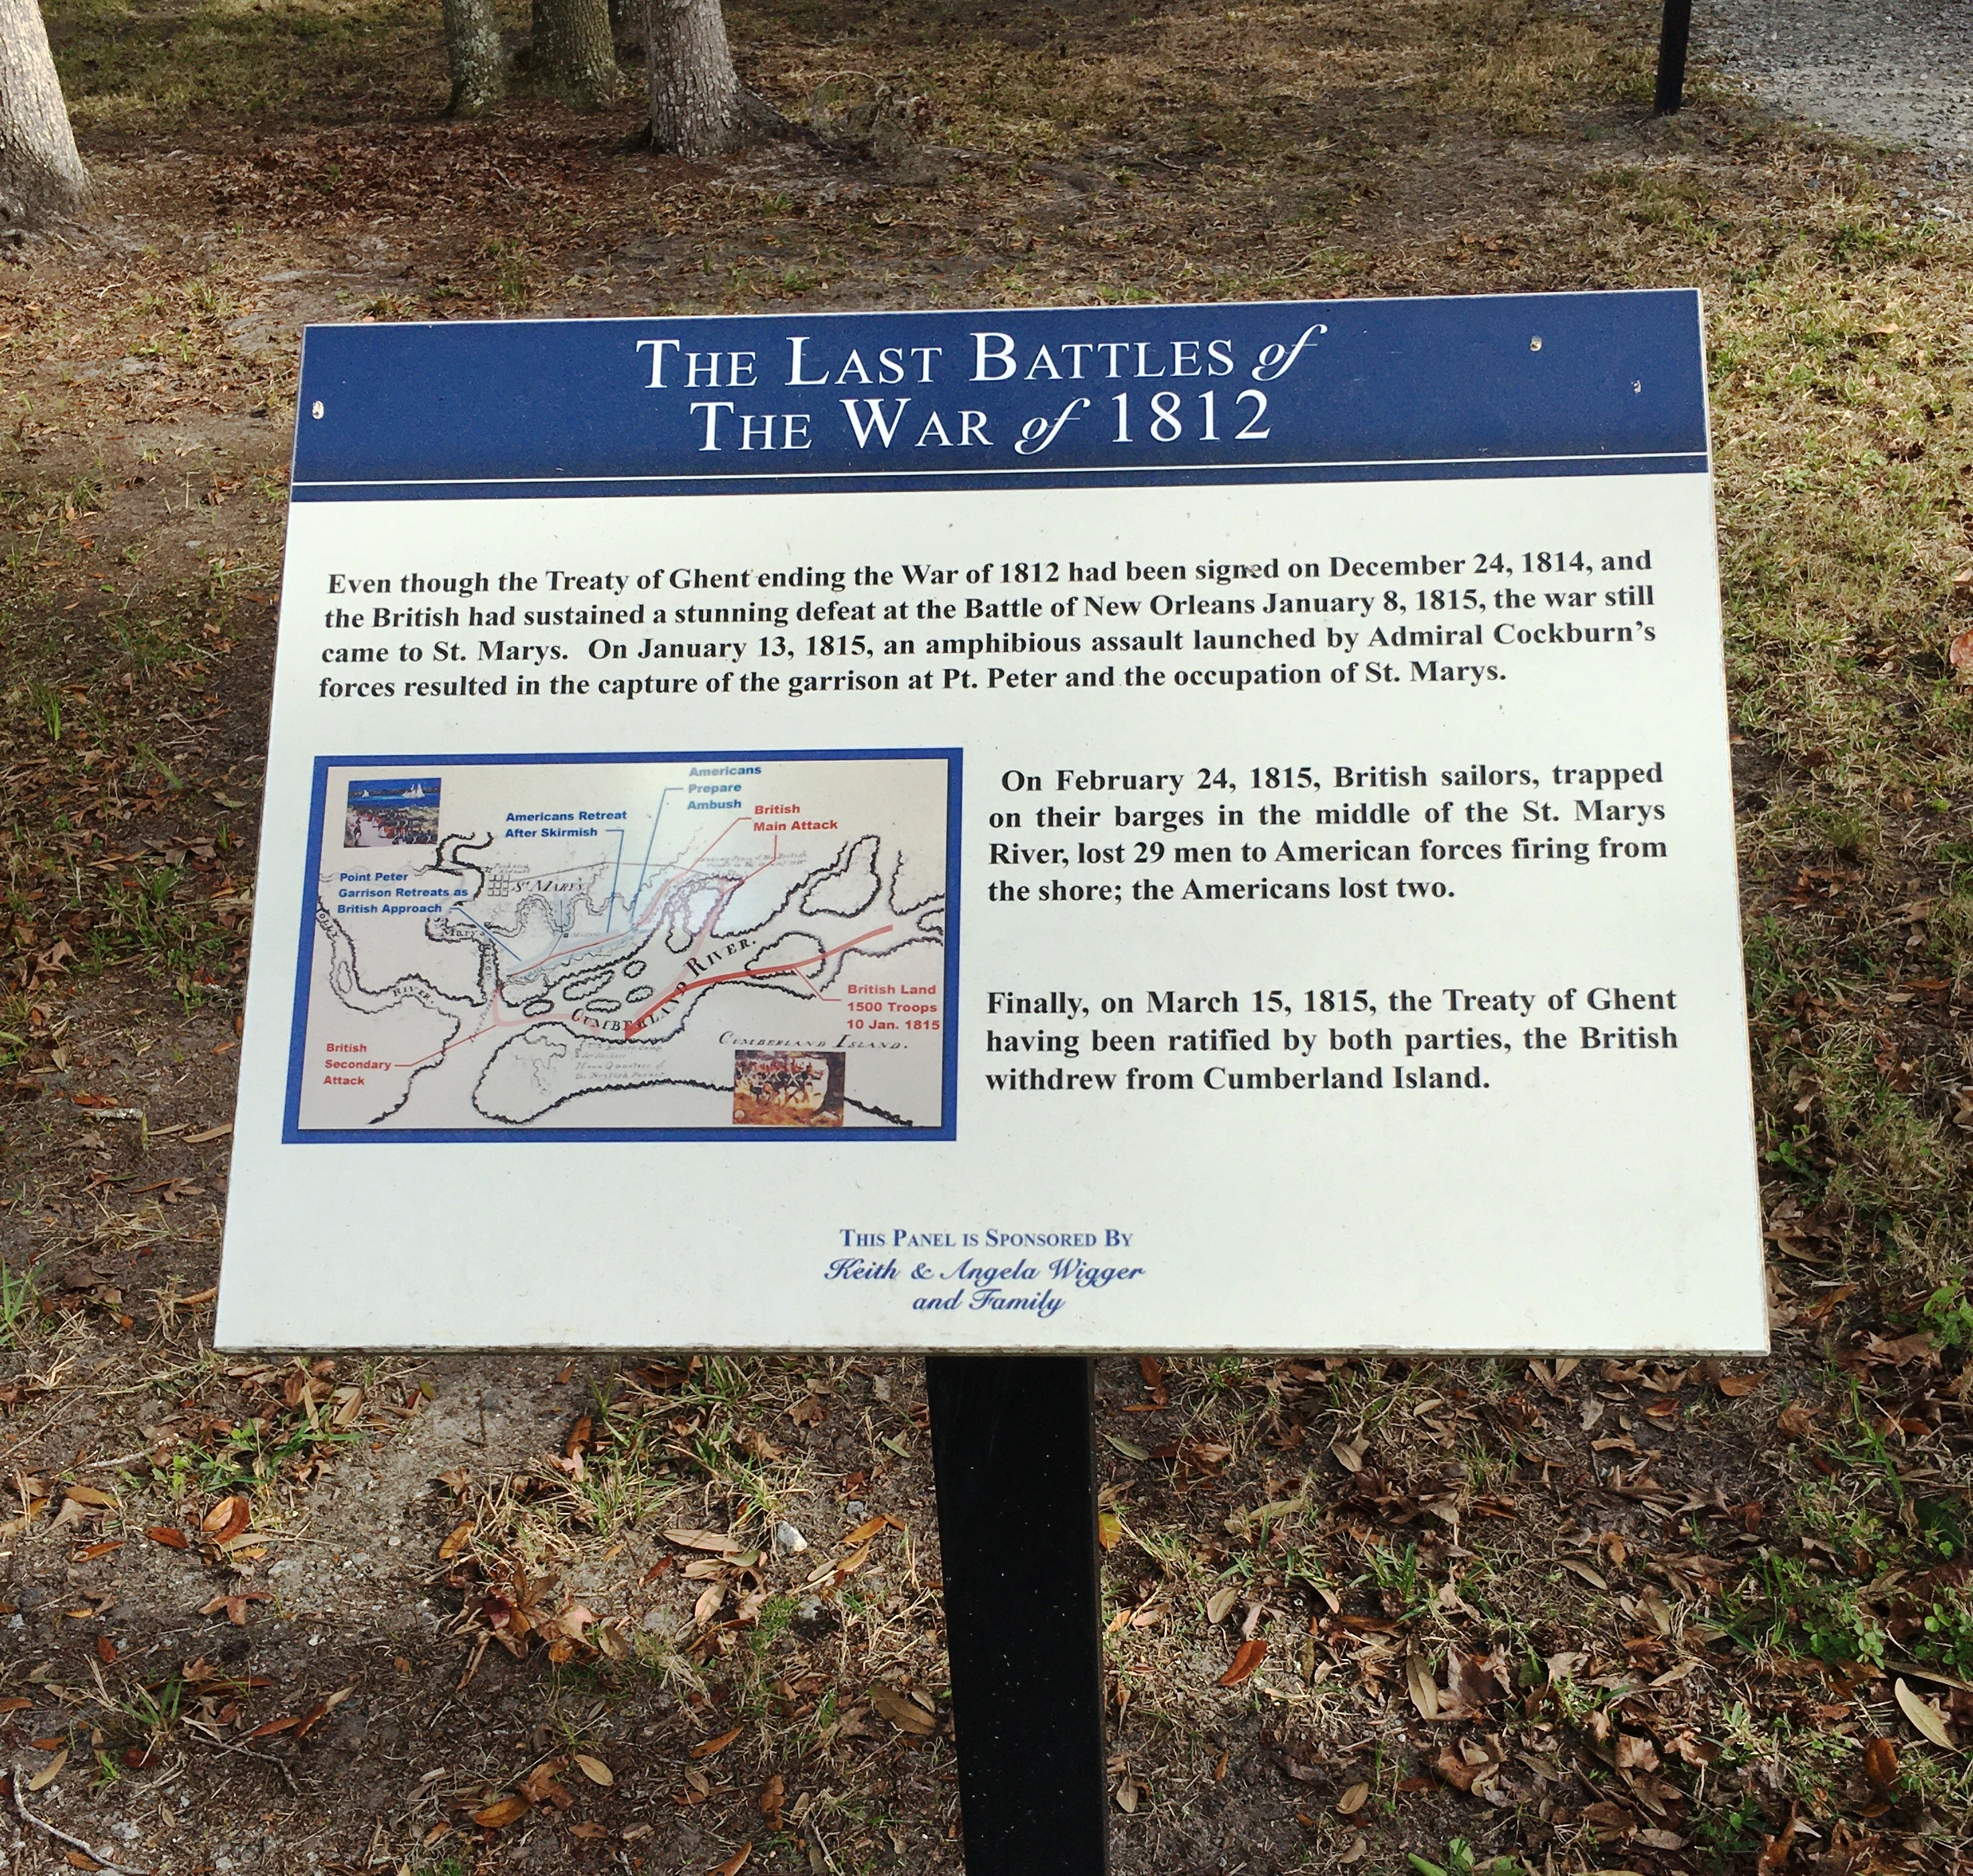 The Last Battles of The War of 1812 Marker